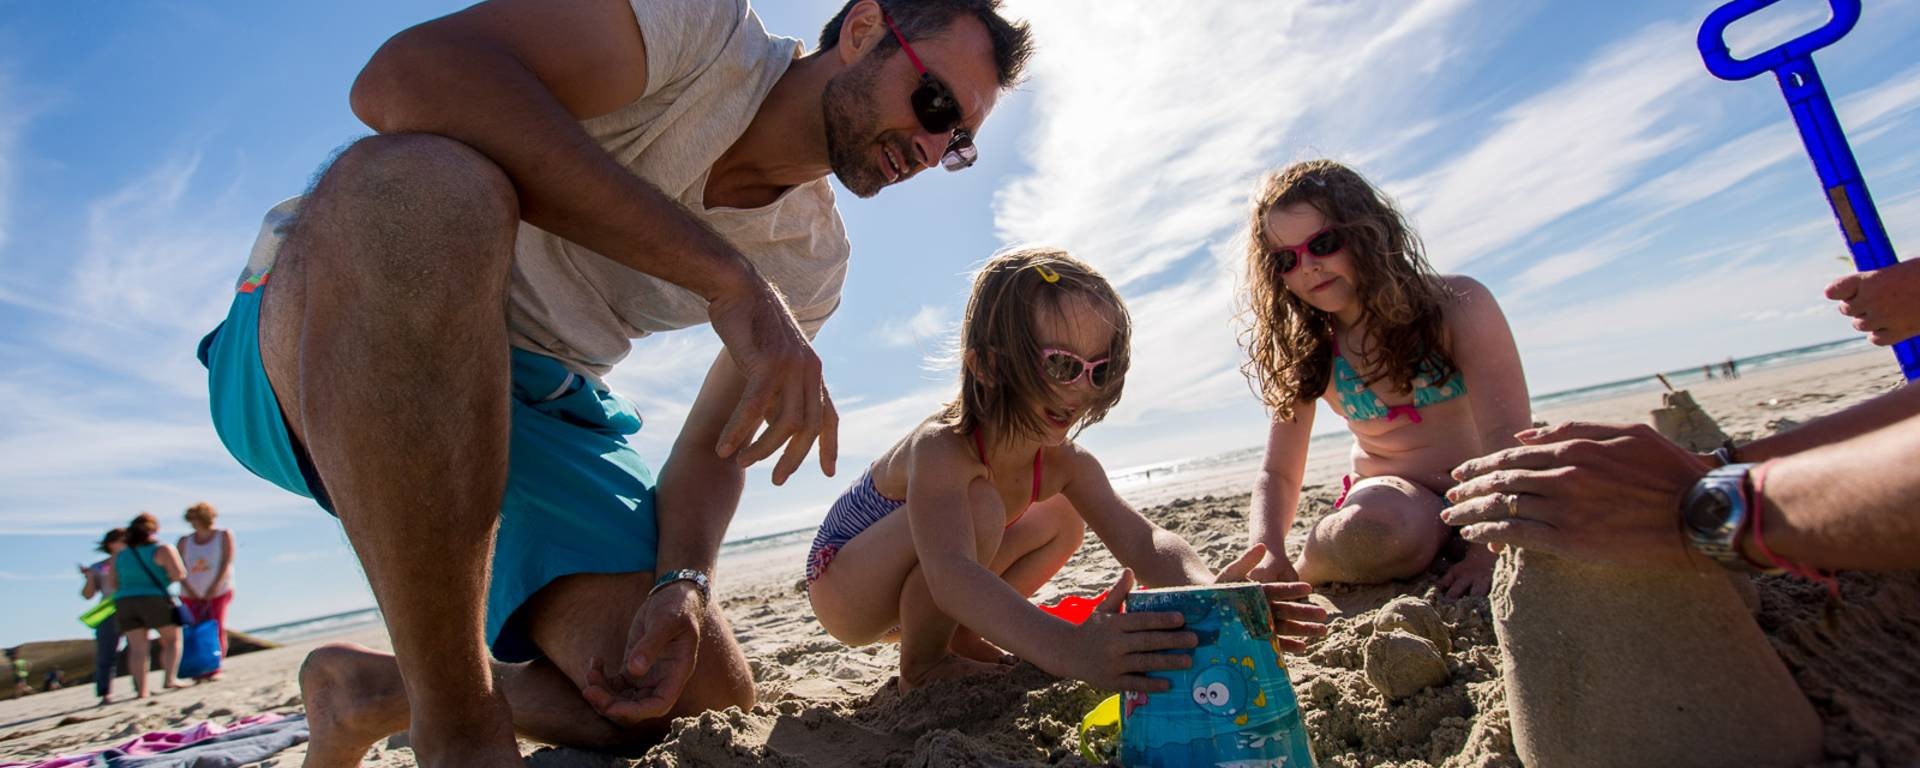 Family fun on the beach, Bay of Audierne © Y Derennes